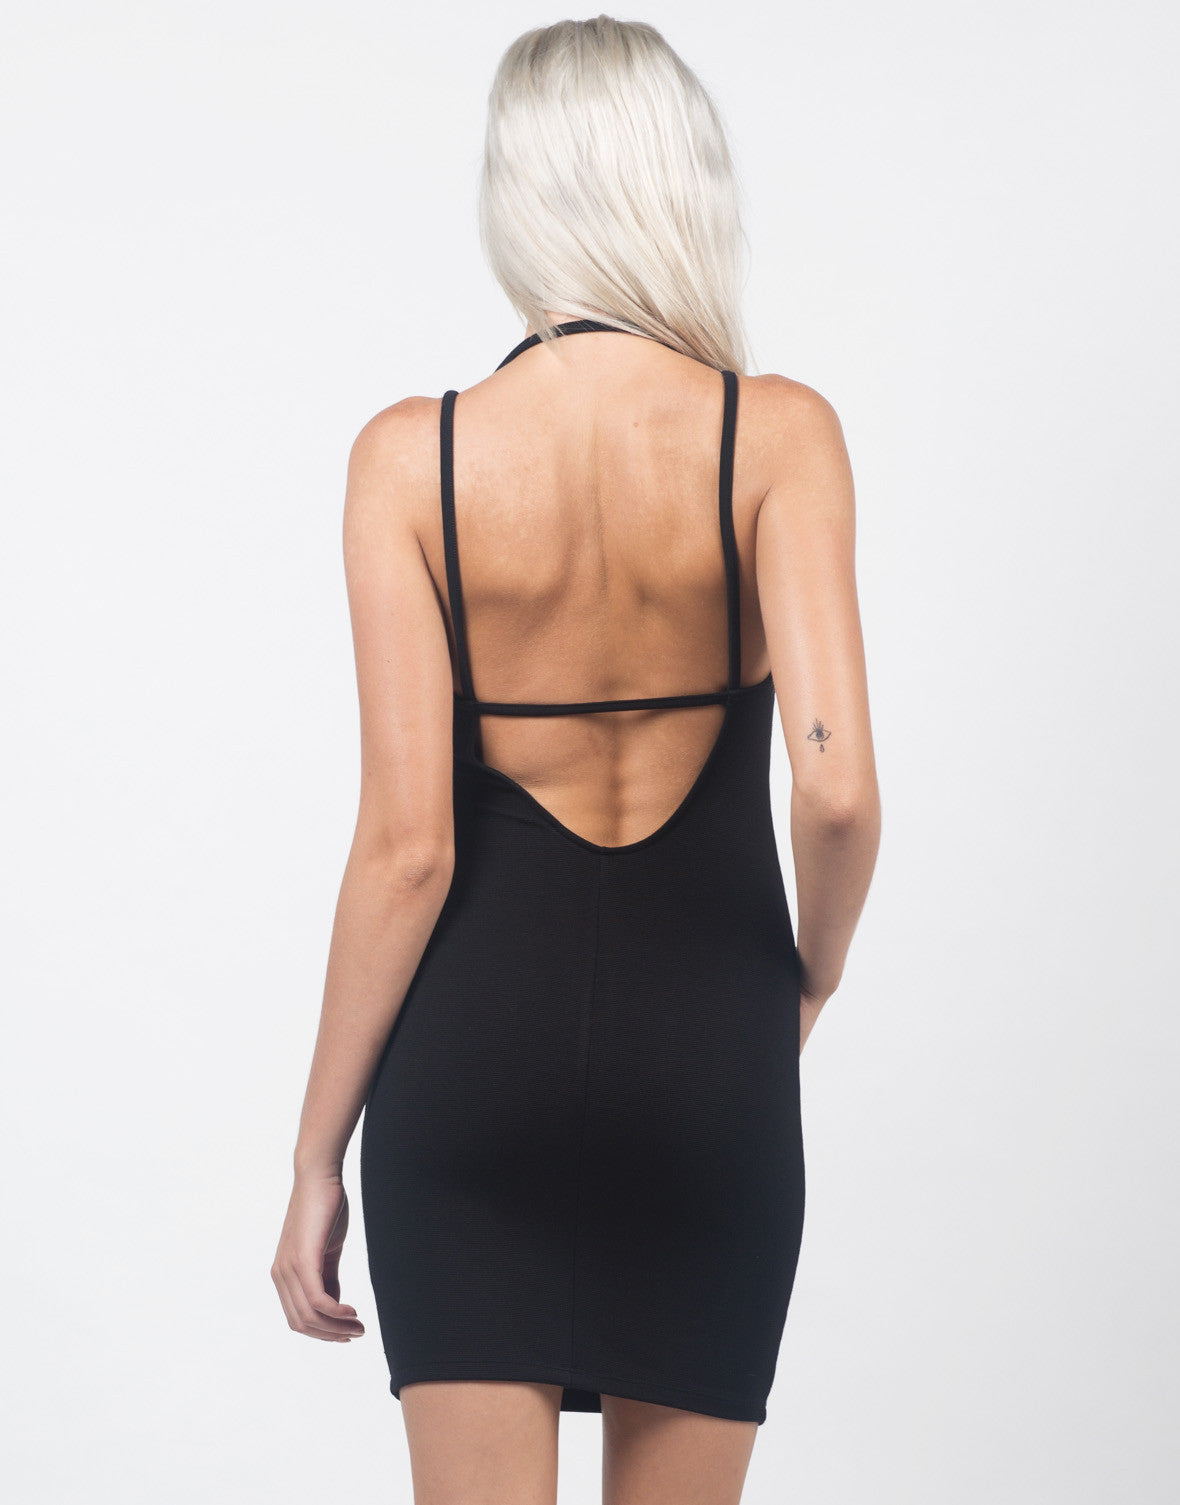 Back View of Strappy Back Textured Dress